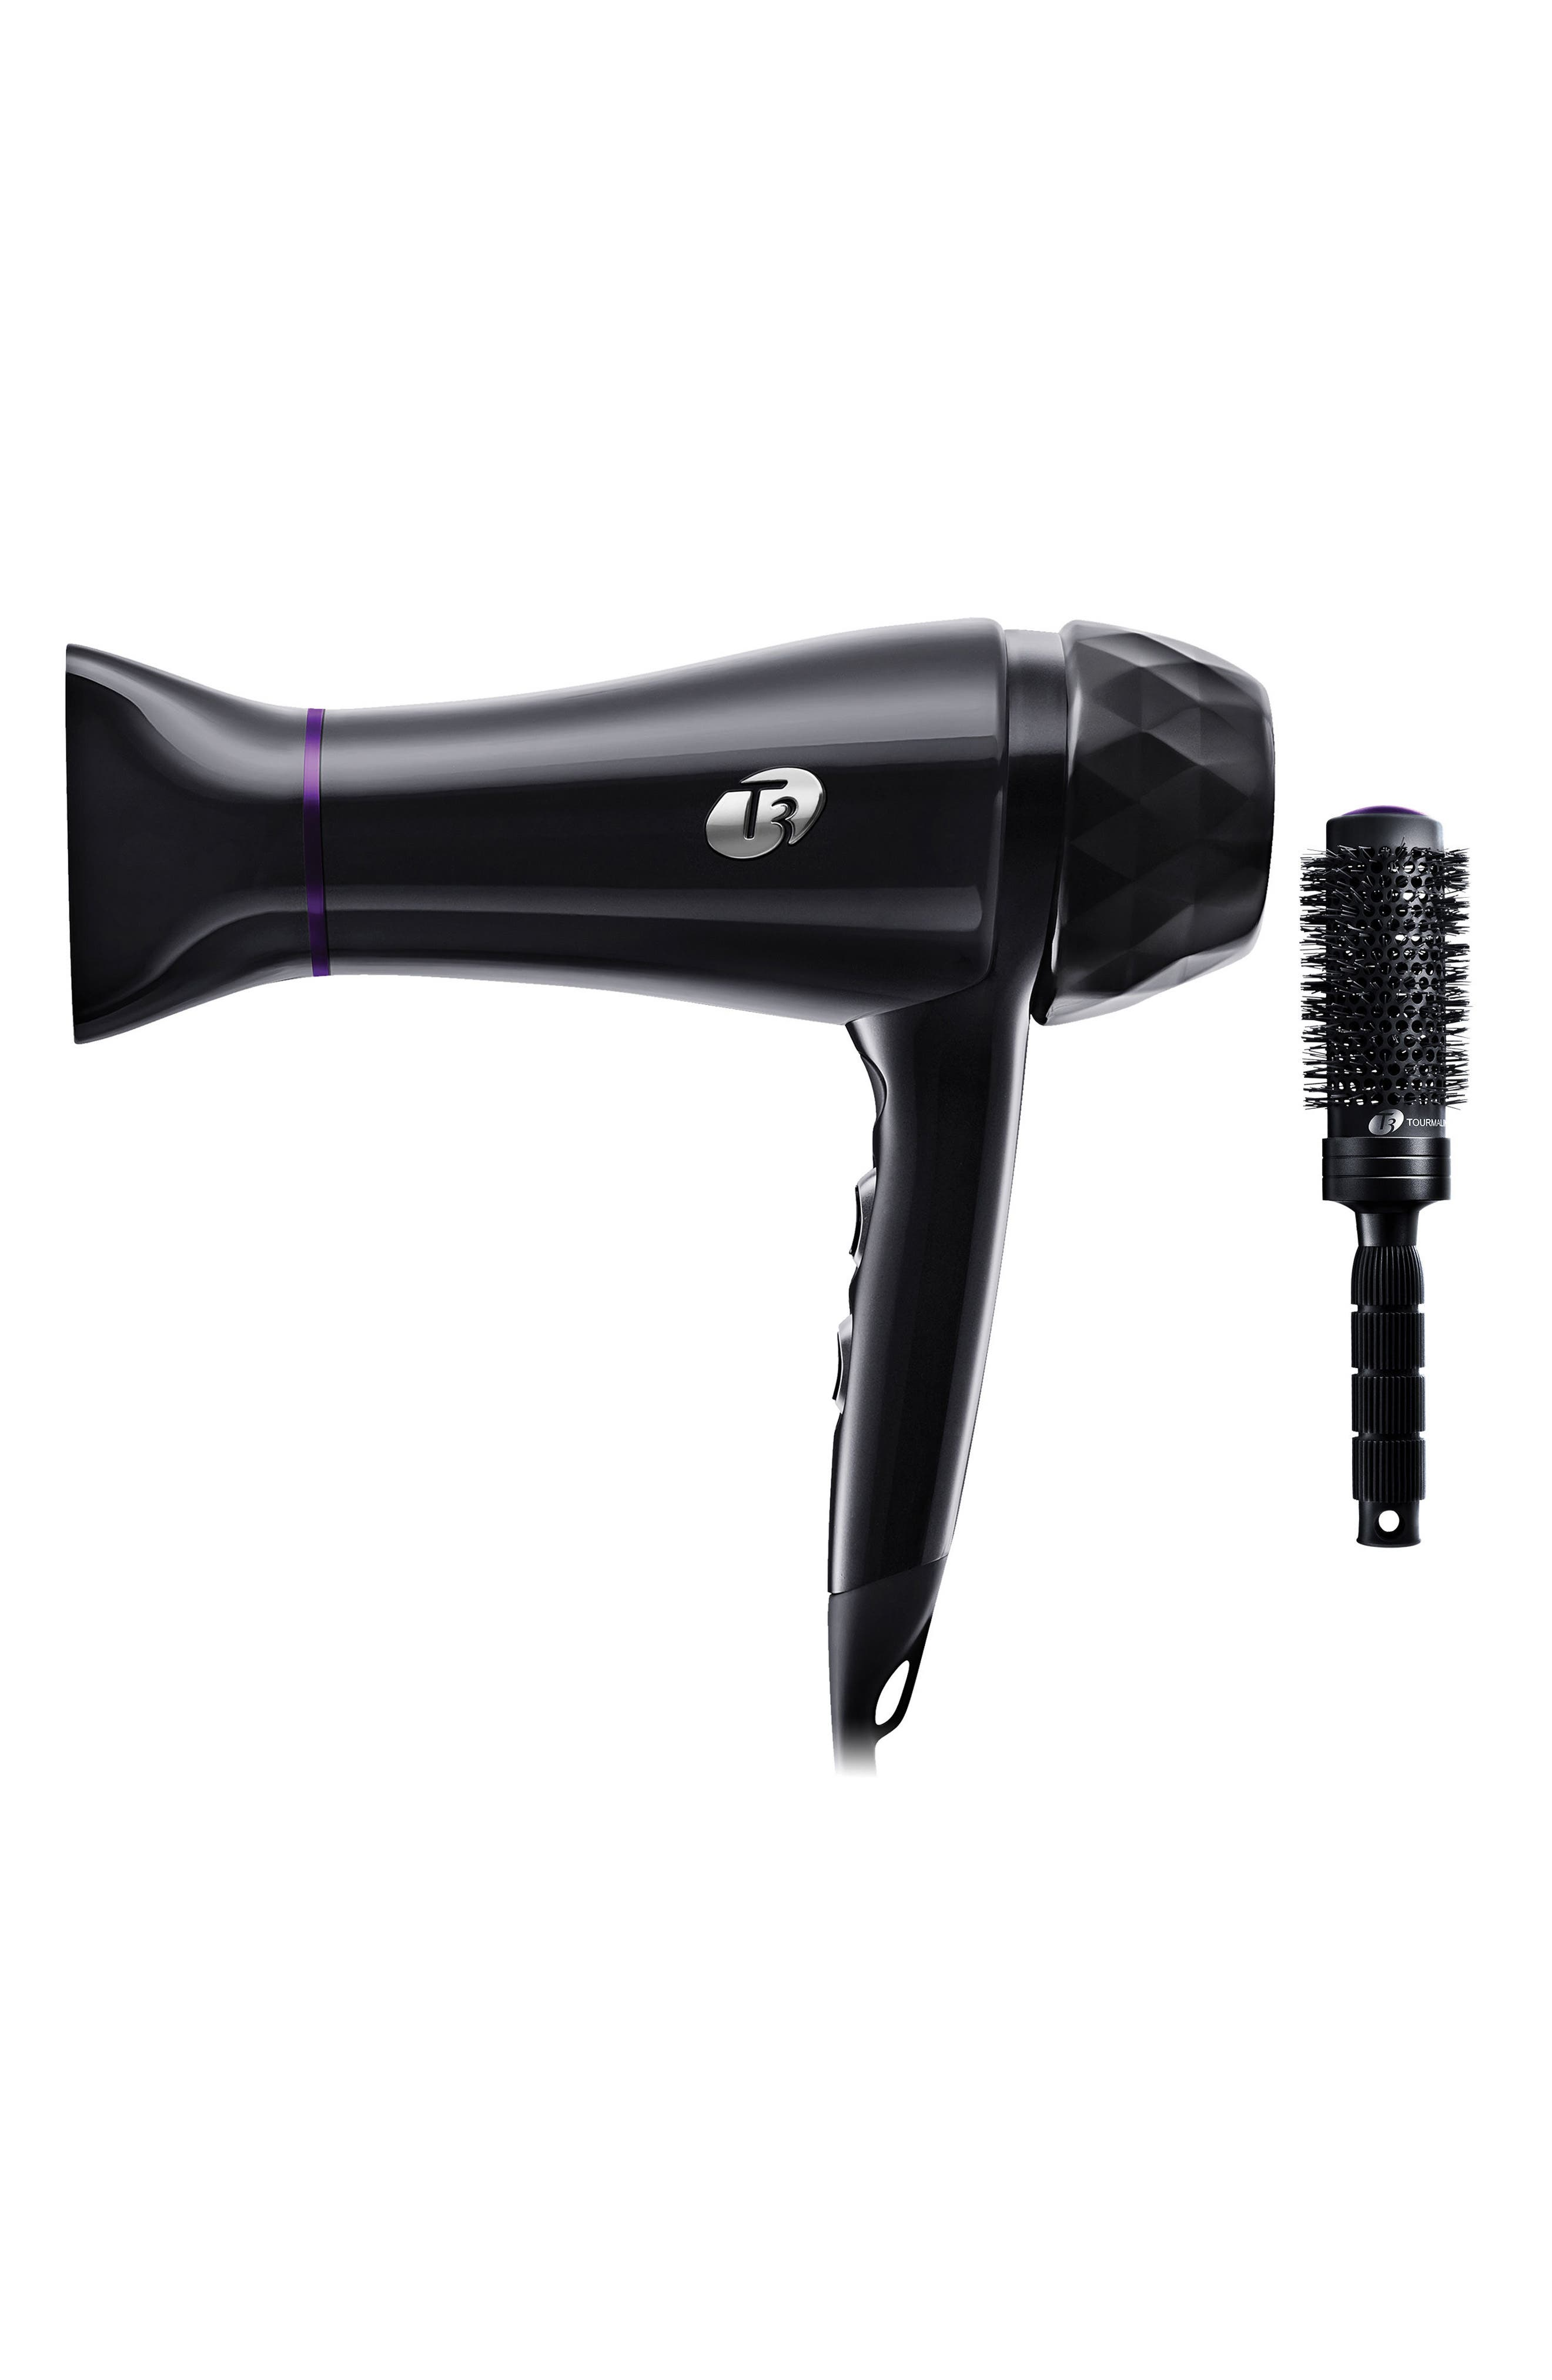 T3 Featherweight Luxe 2i Dryer